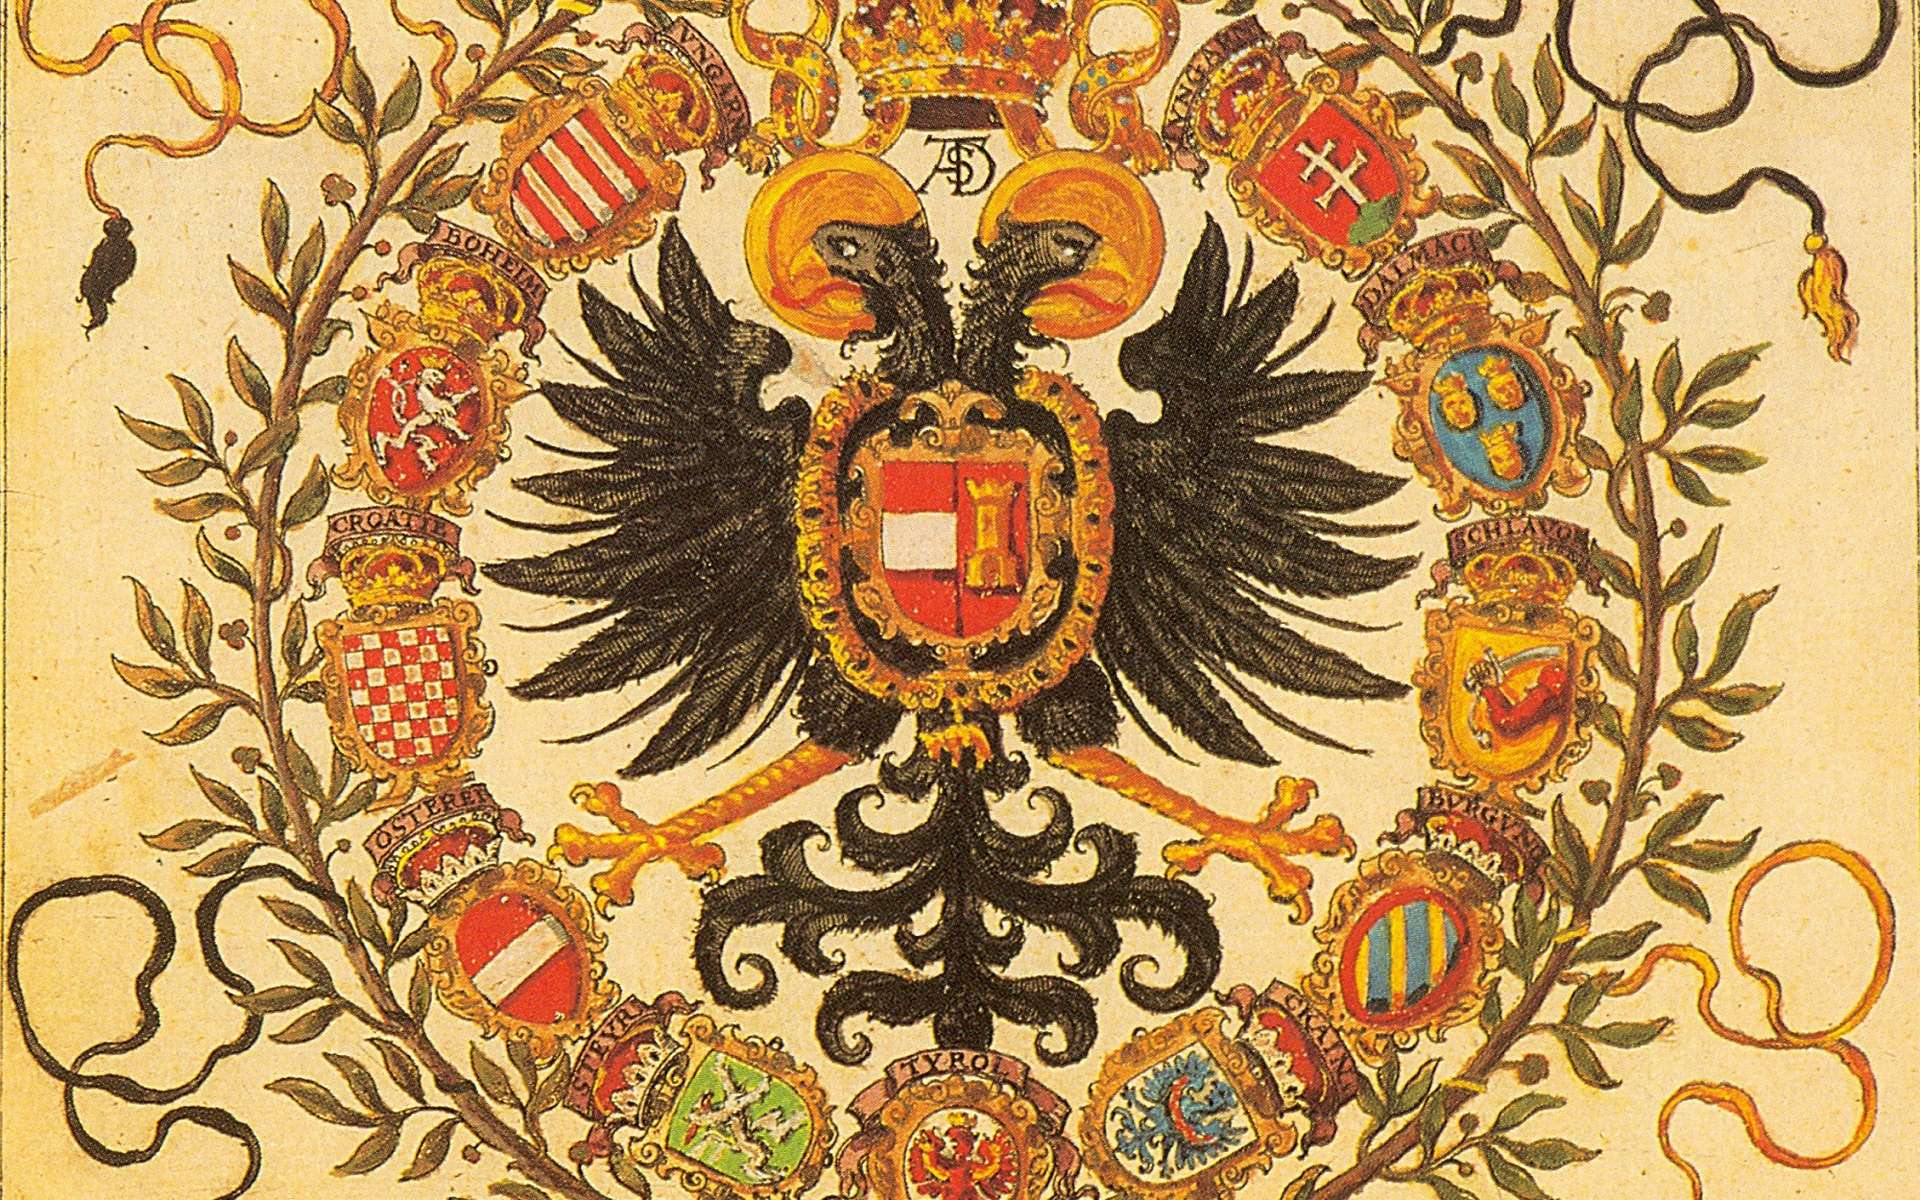 Armoiries du Saint Empire romain germanique, dans l'Armorial de Johann Siebmacher, paru en 1605. © Wikimedia Commons, domaine public